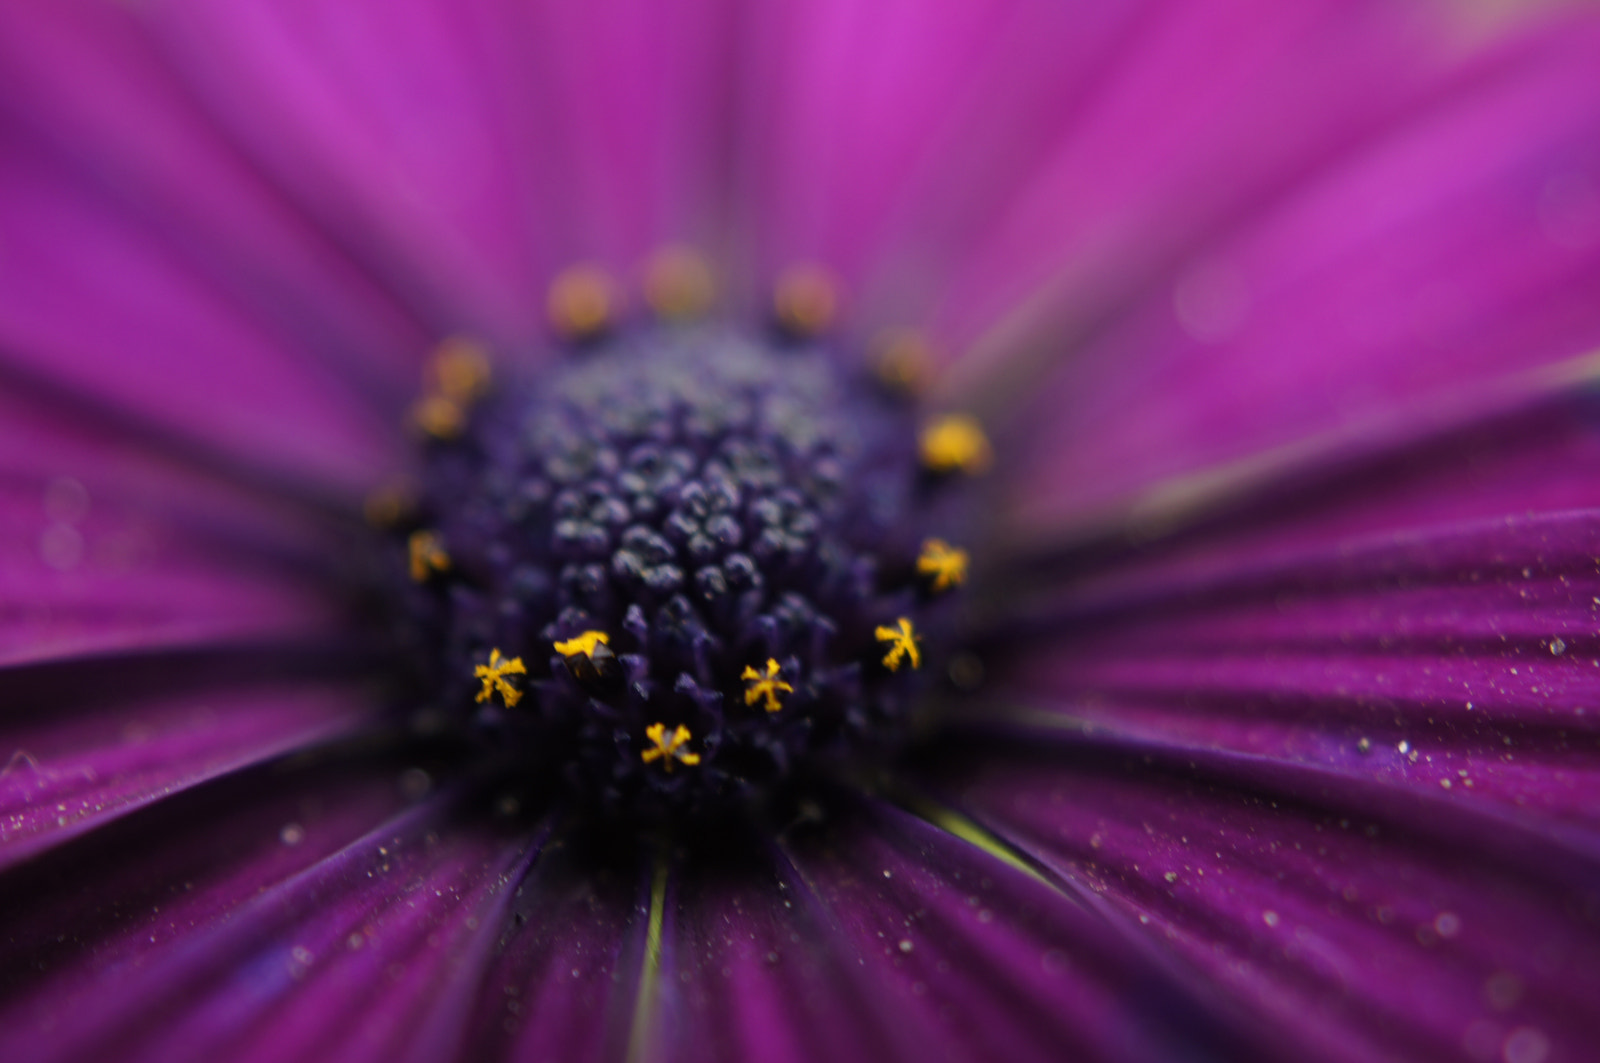 Photograph blooming nature. by Afzal Khan on 500px